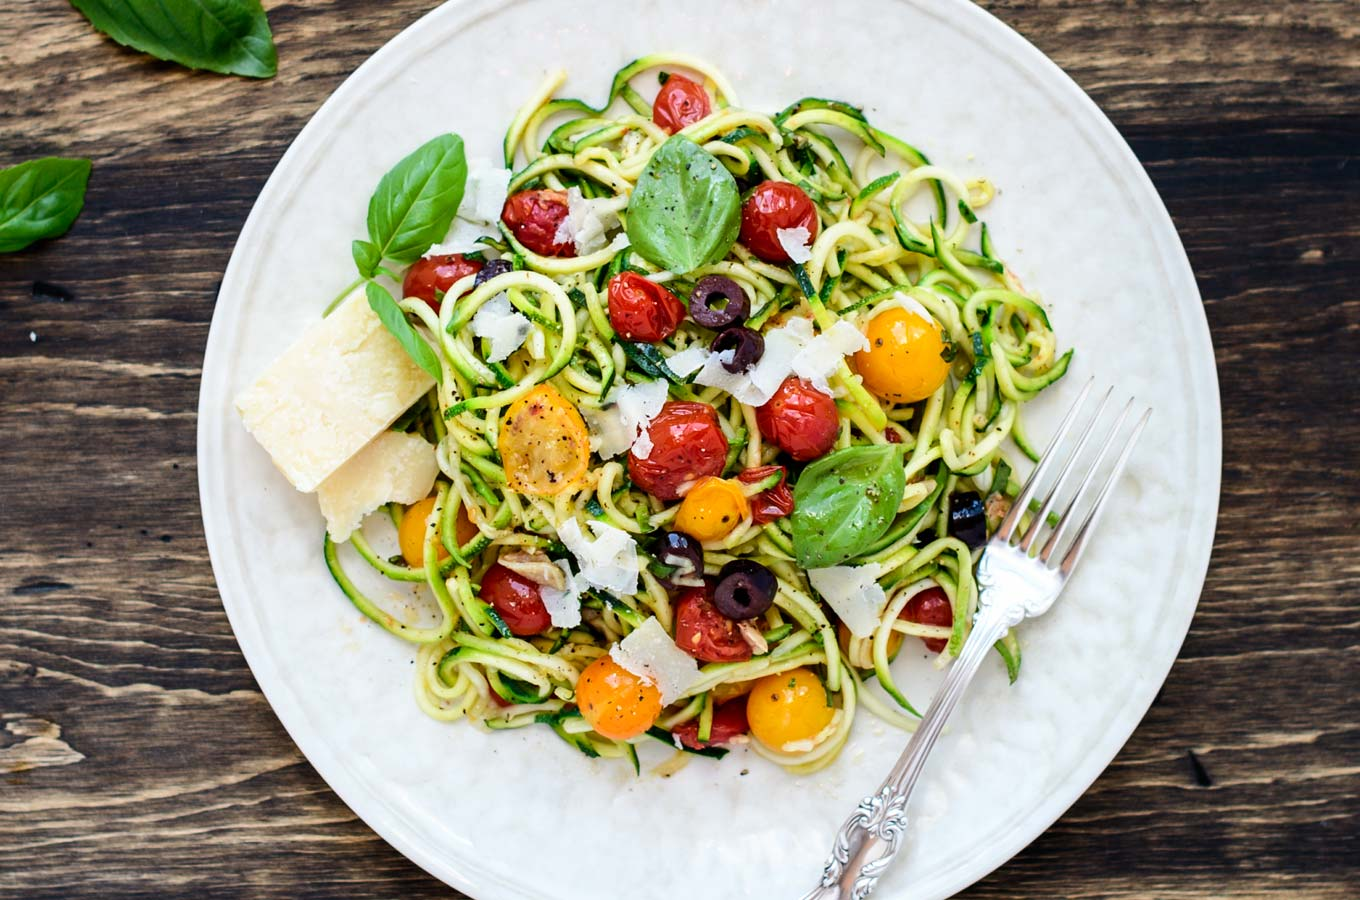 Zucchini Pasta with tomatoes and olives on a plate